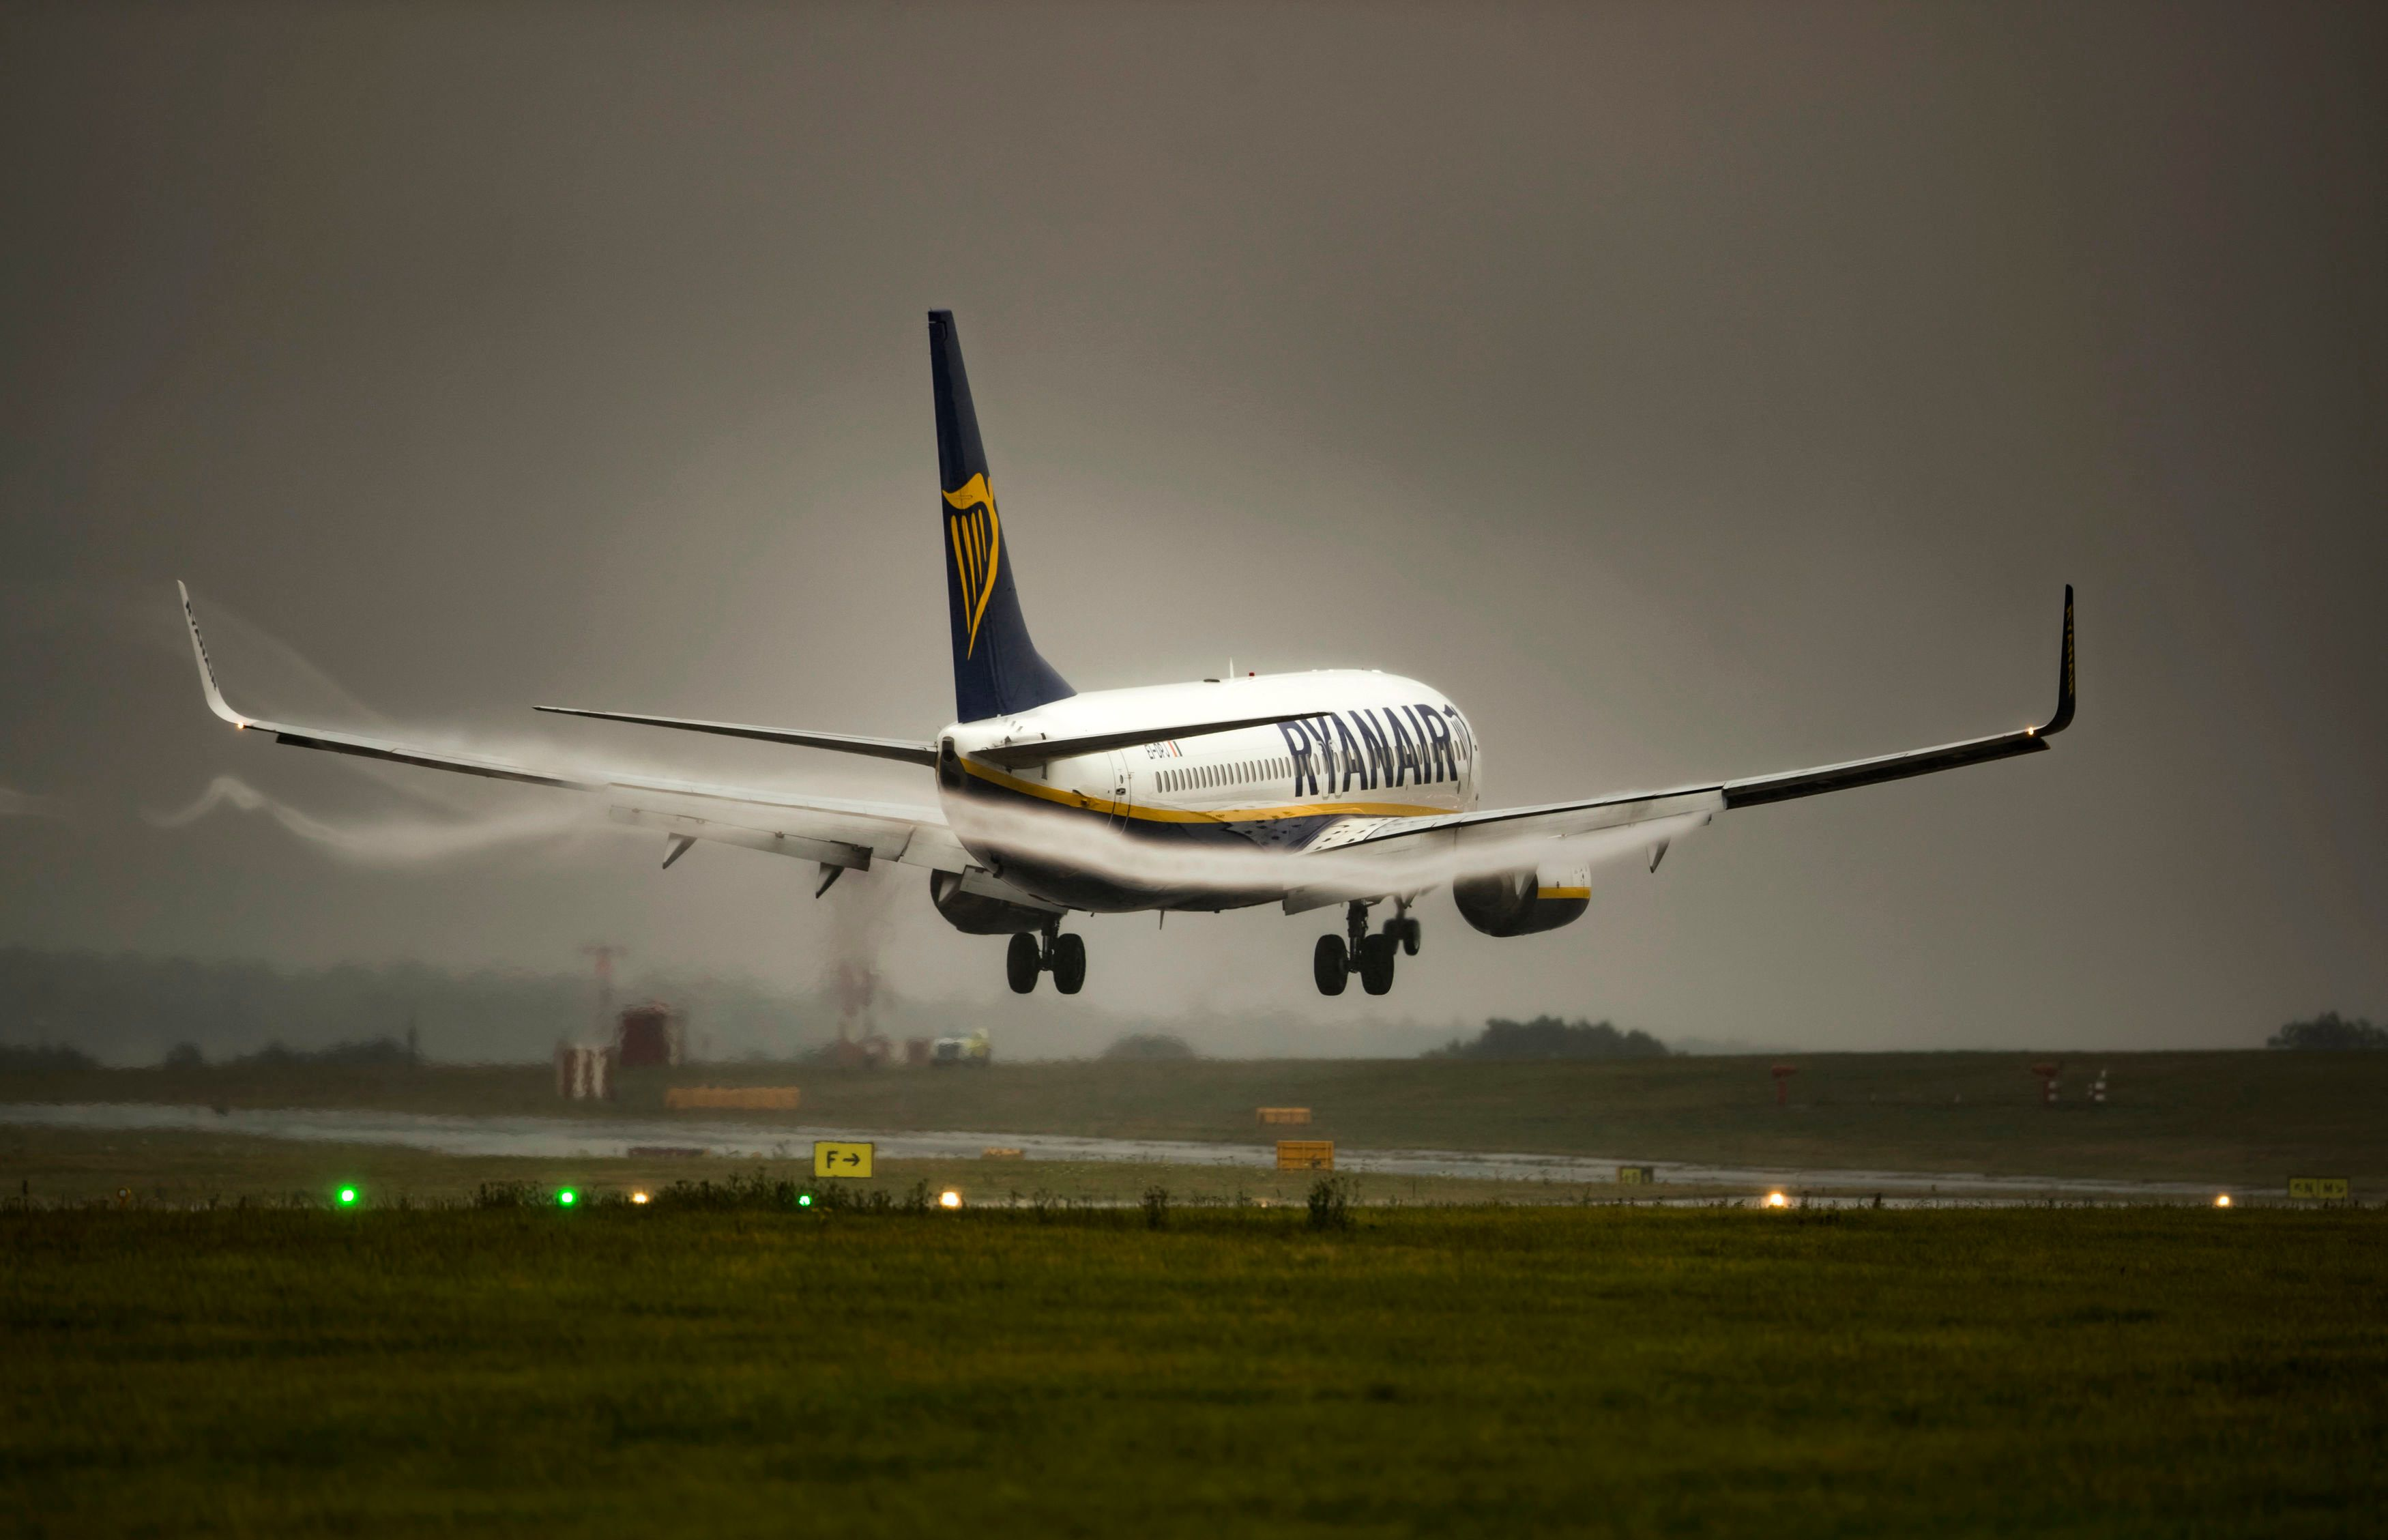 Flights disrupted at Stansted Airport due to bad weather